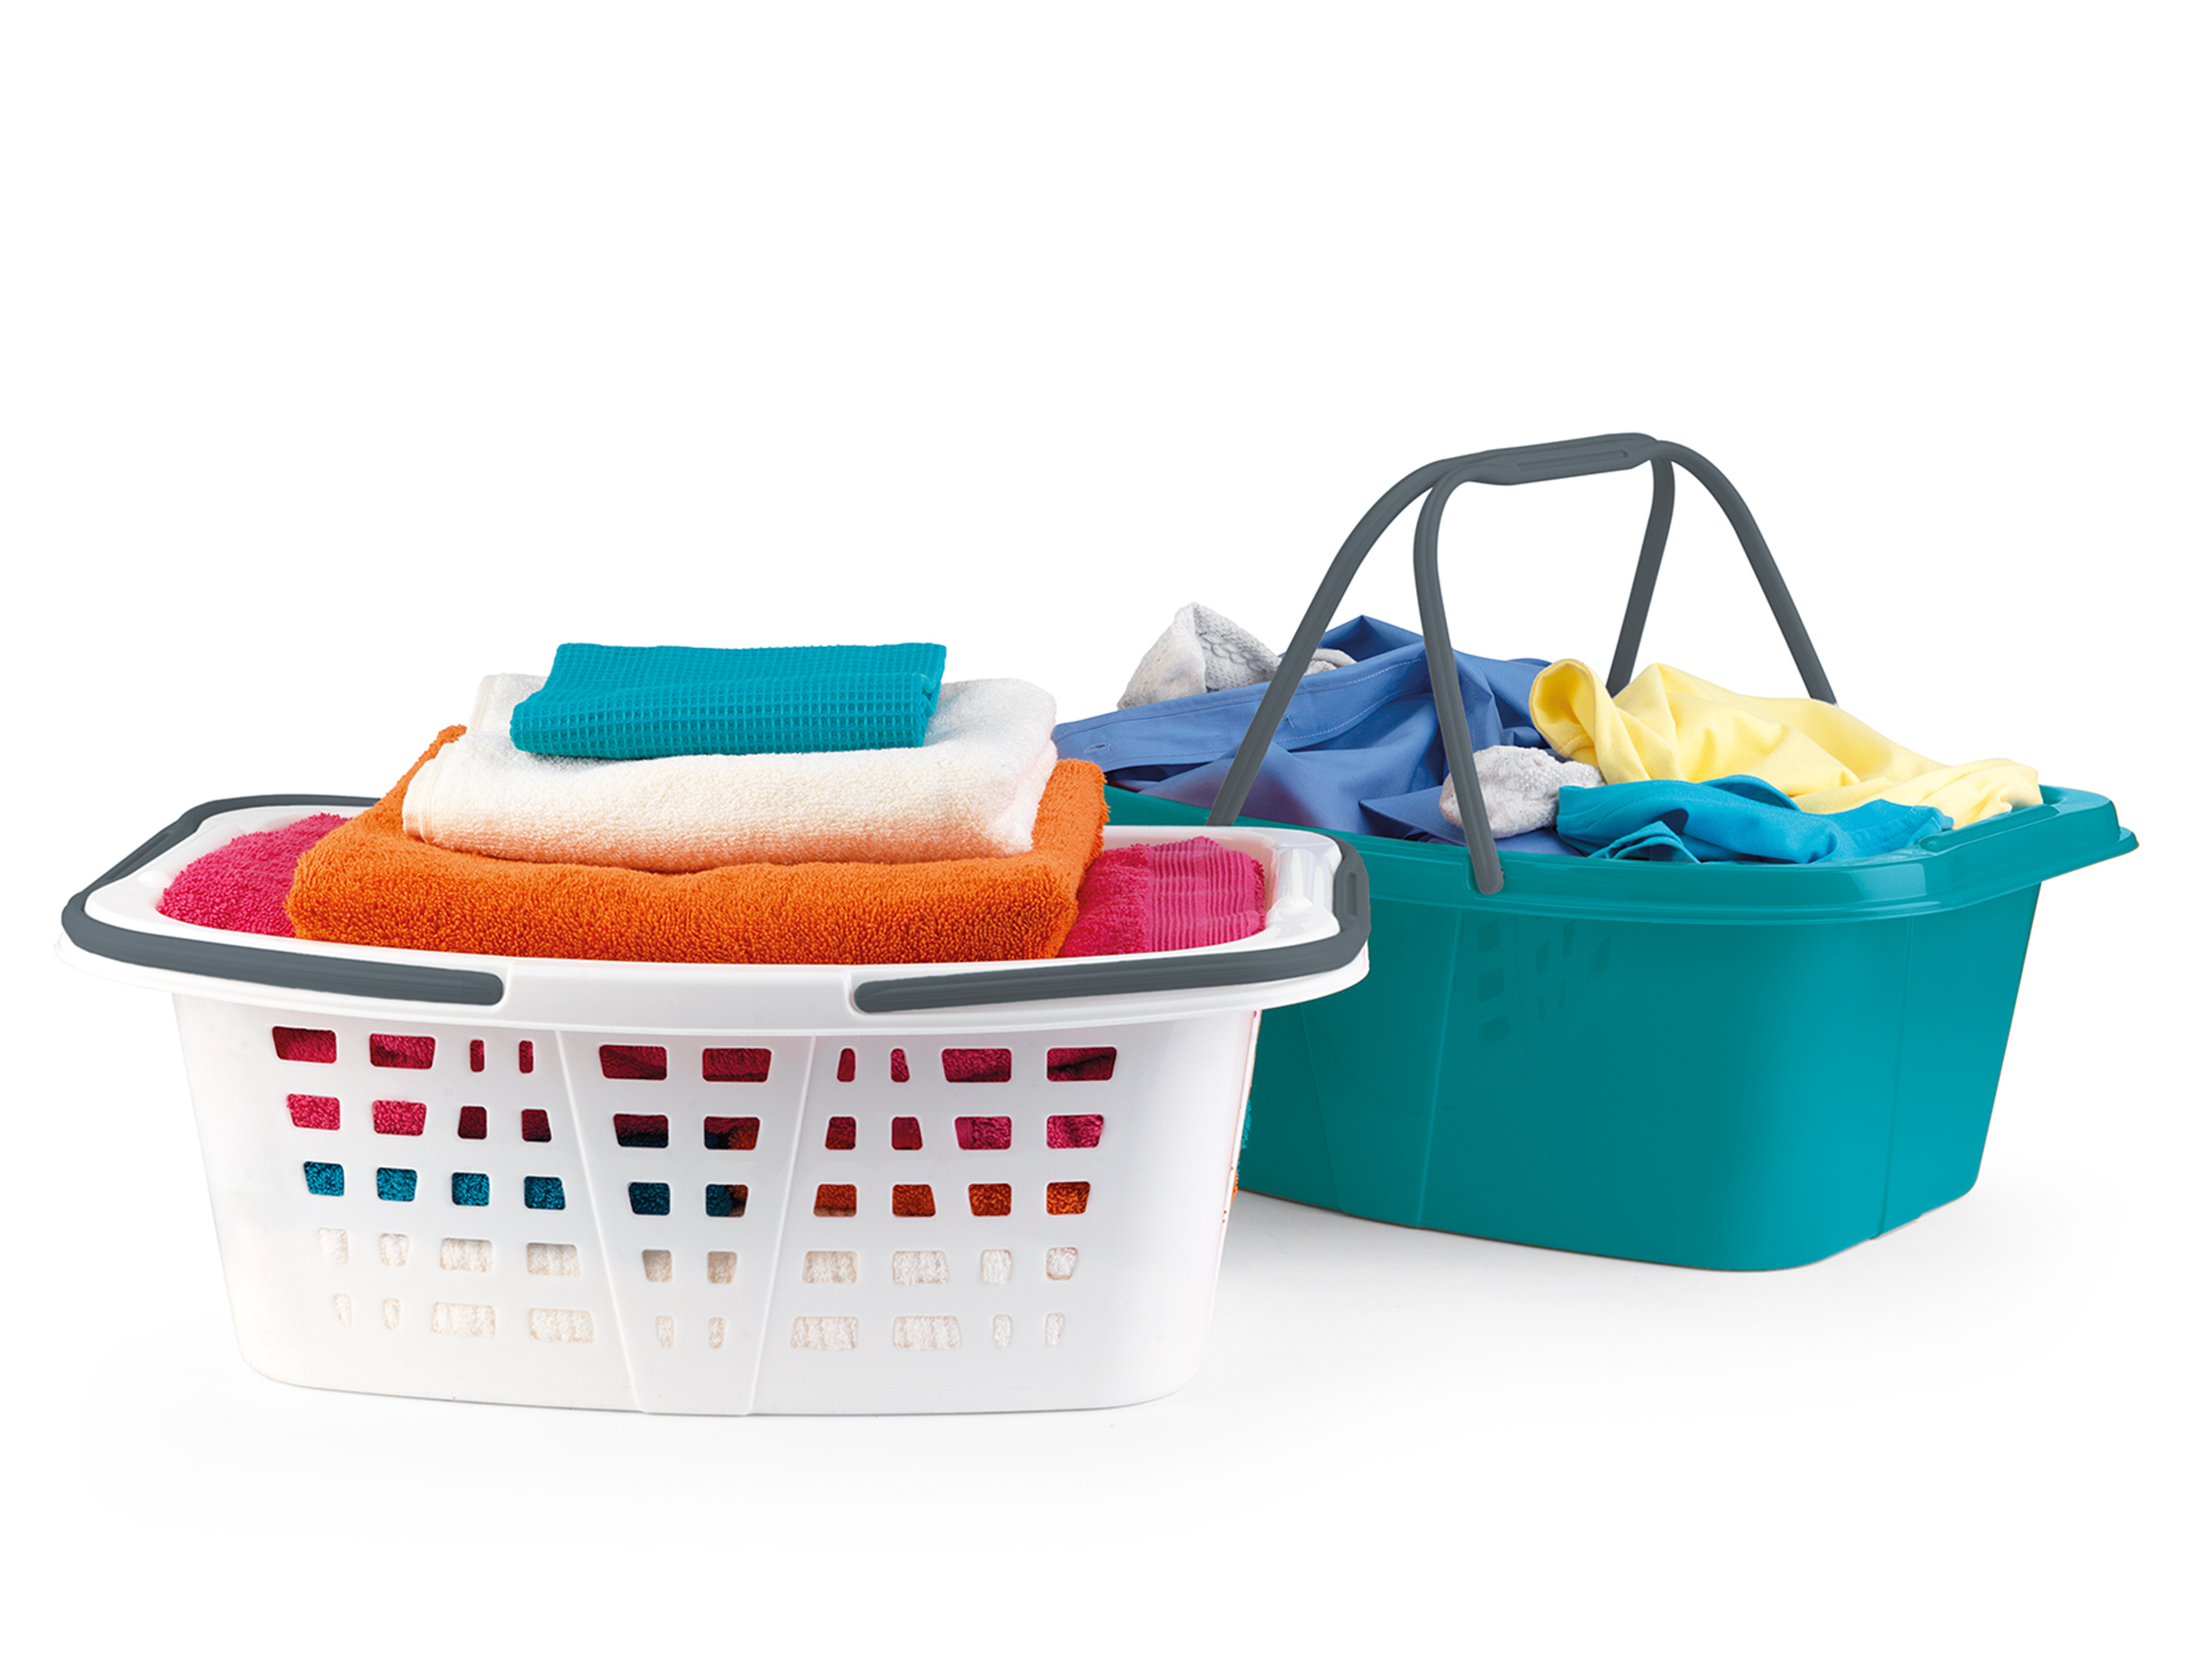 Beldray 3-Tier Deluxe Clothes Airer and Laundry Basket Set   Beldray